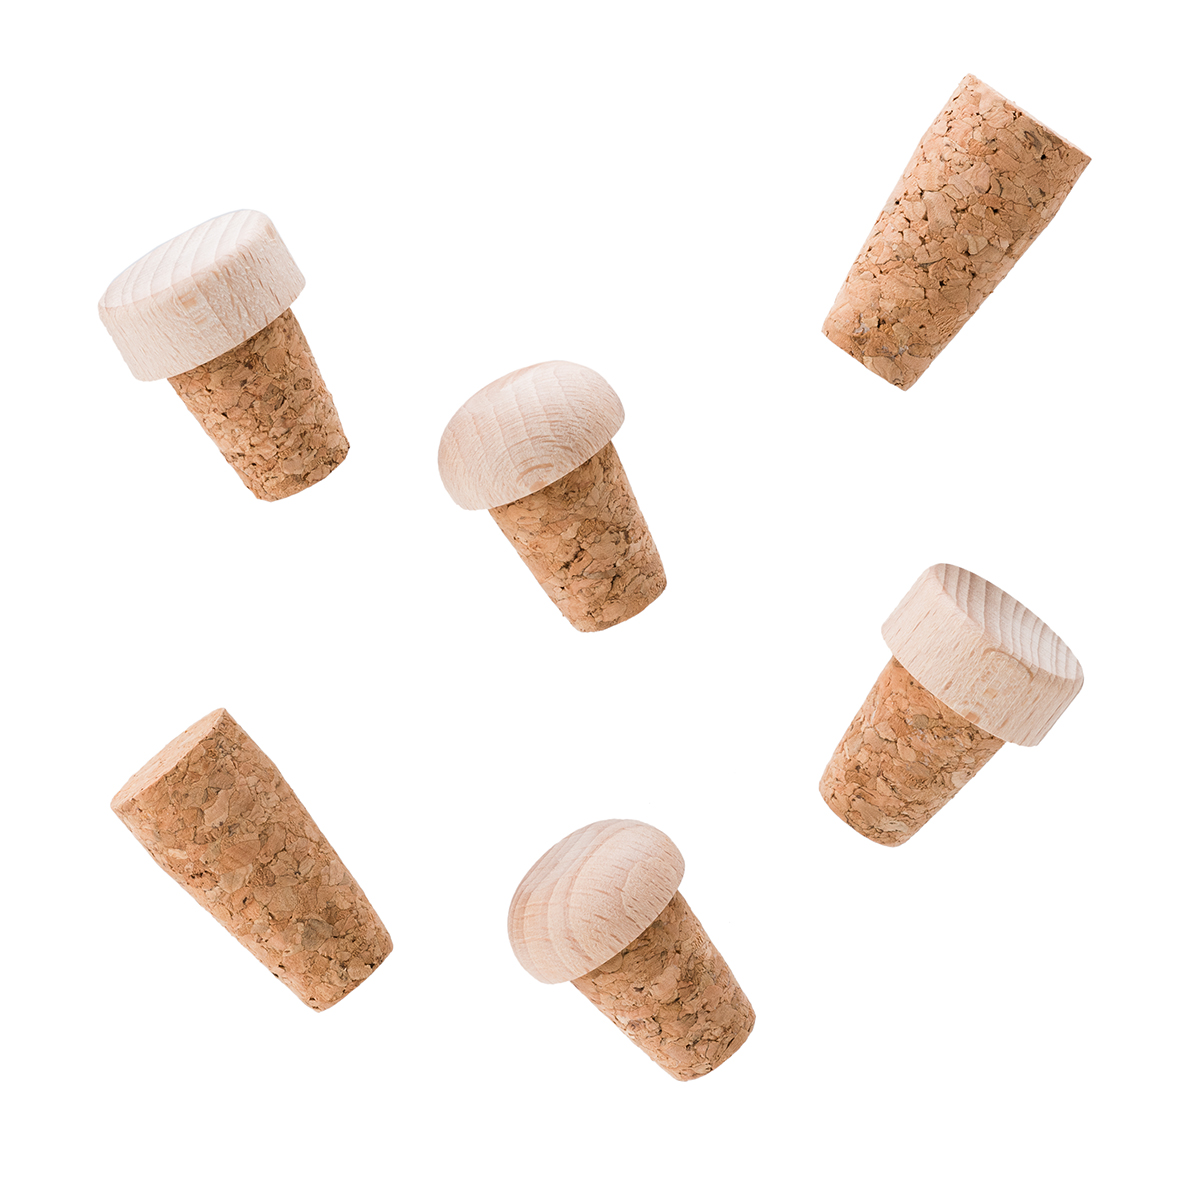 Replacement Corks